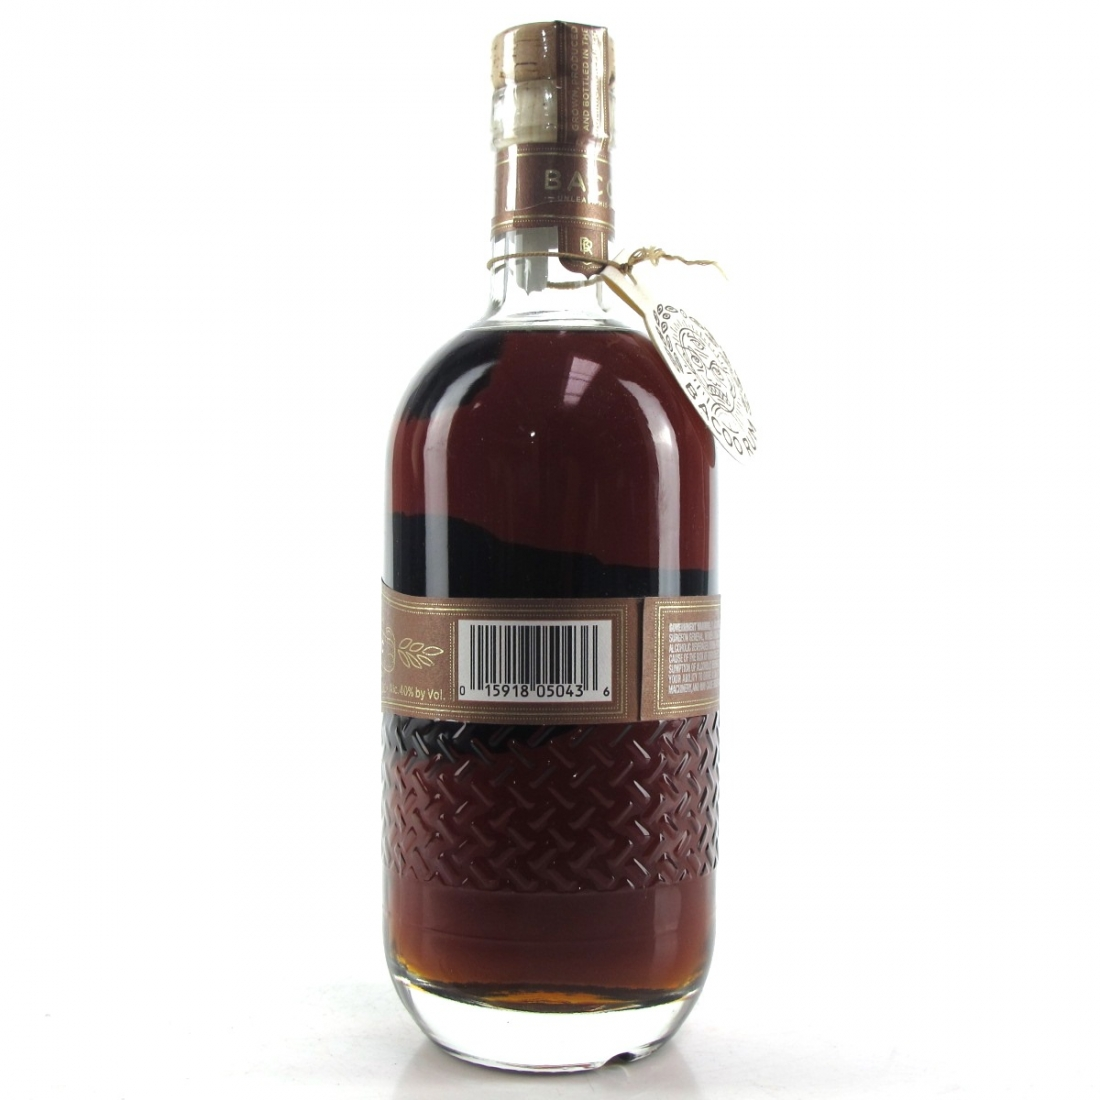 Bacoo 12 Year Old Dominican Republic Rum